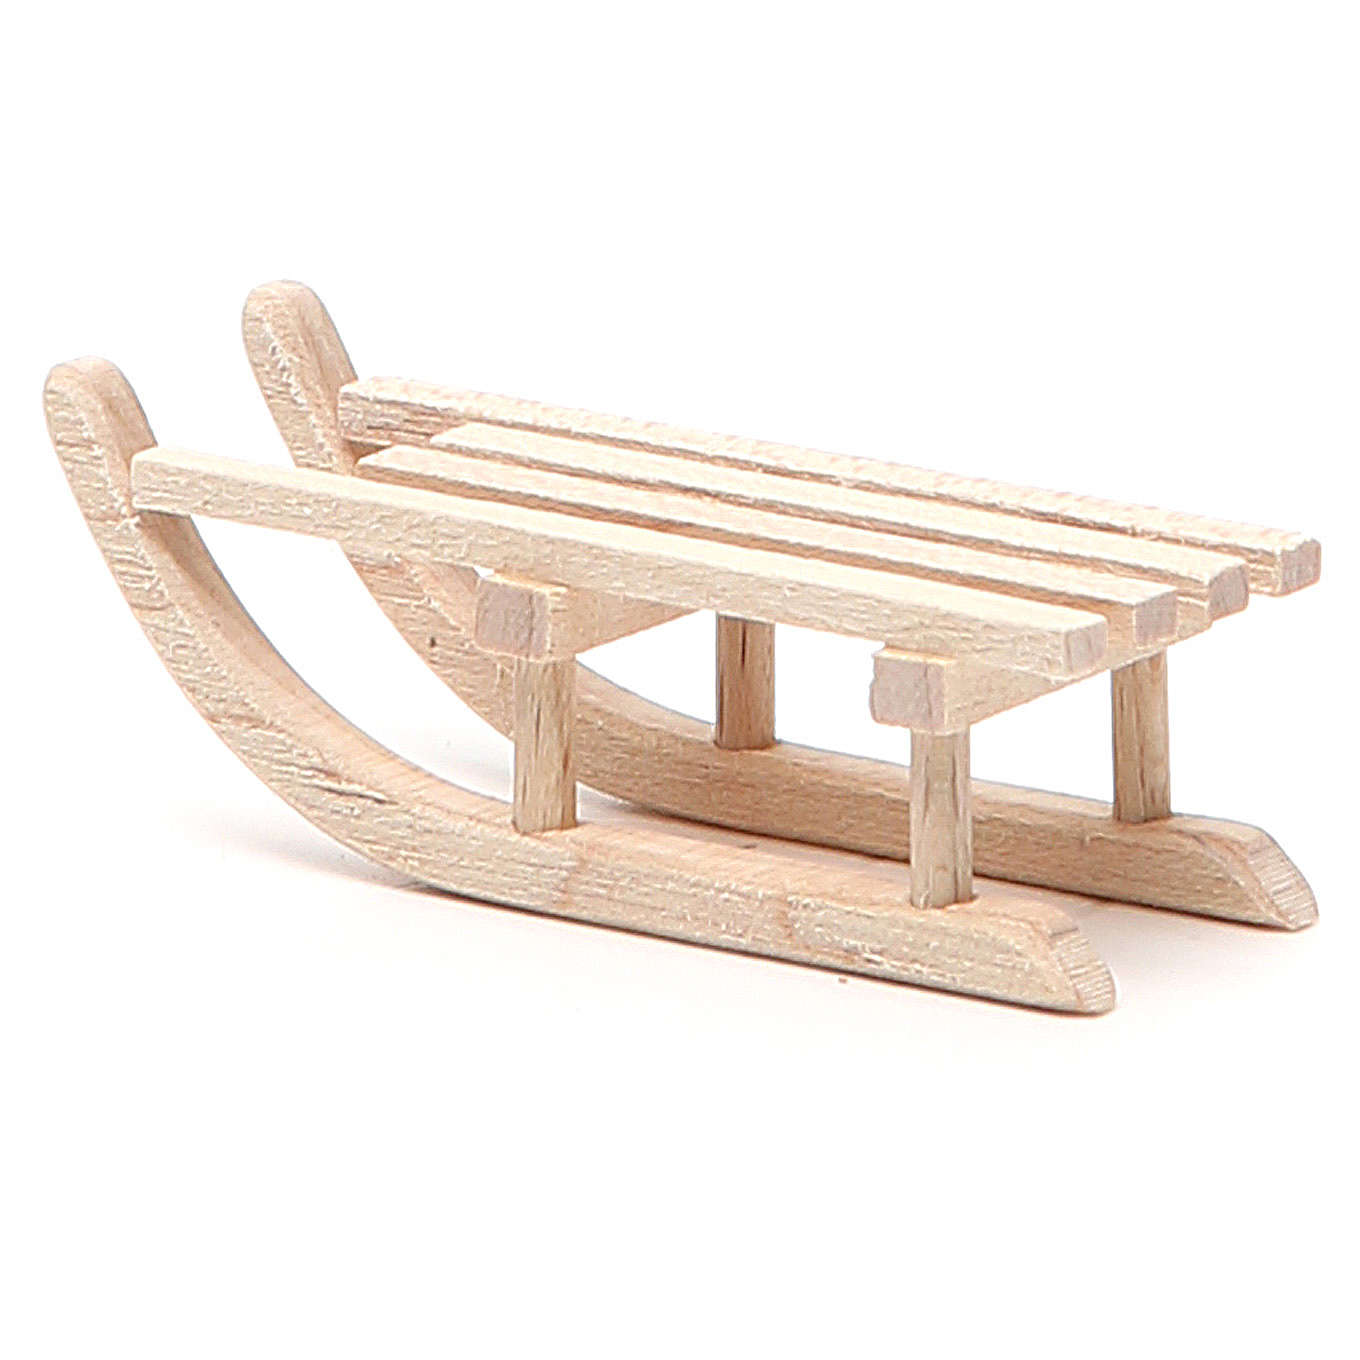 Sled in wood for nativity h. 2x6,5x2,5cm 4